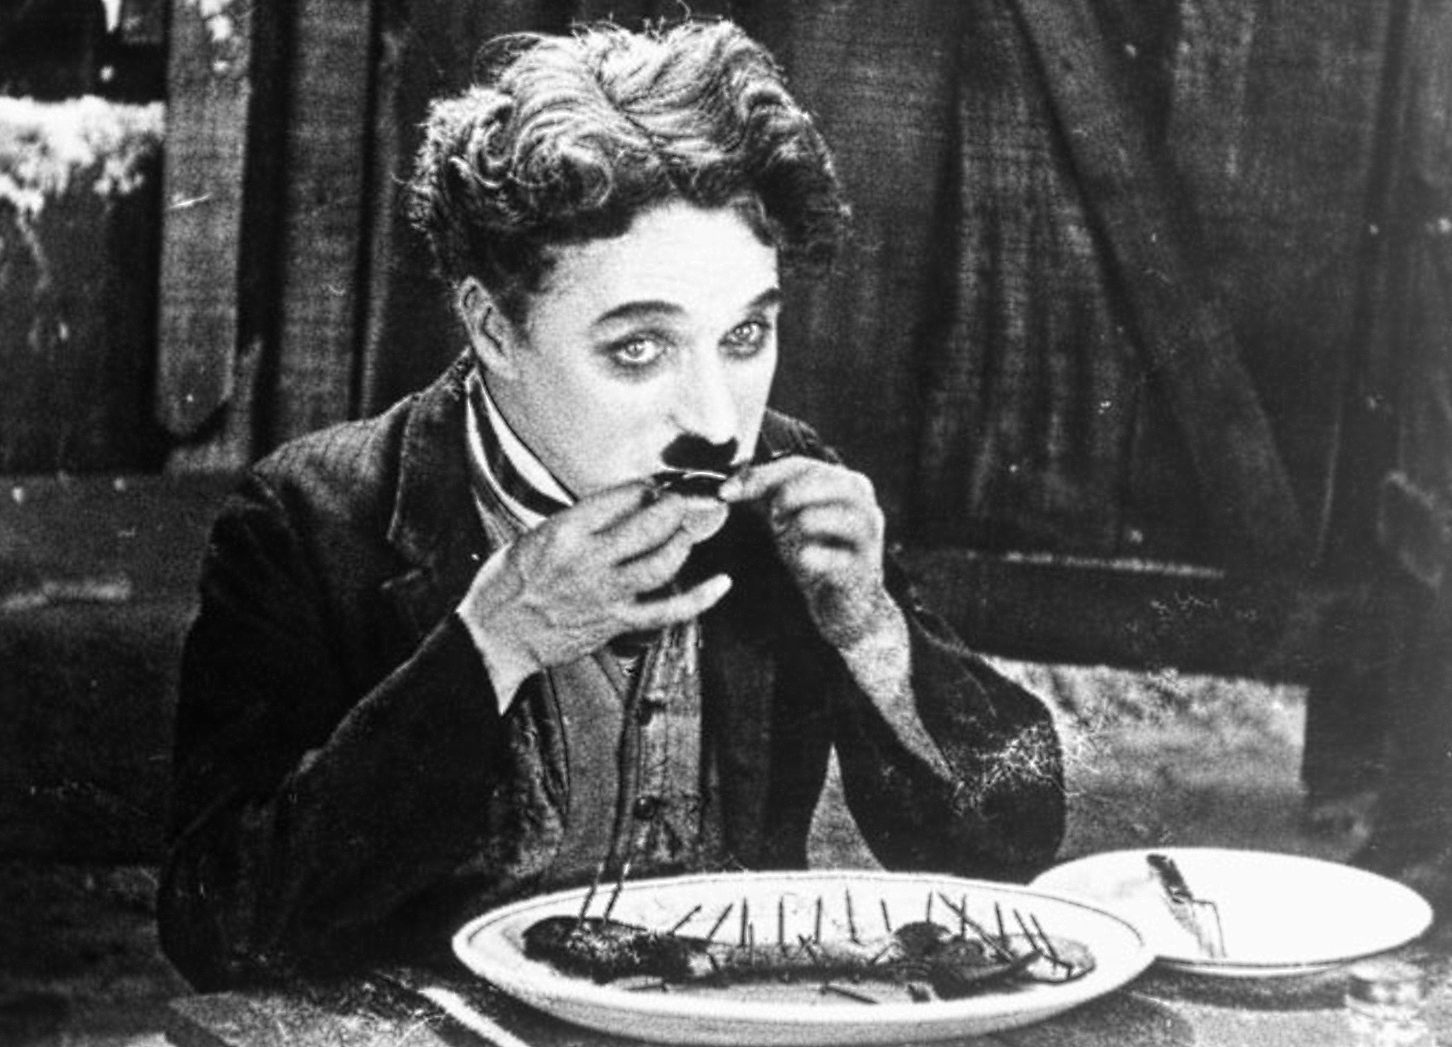 Charlie Chaplin with a mustache